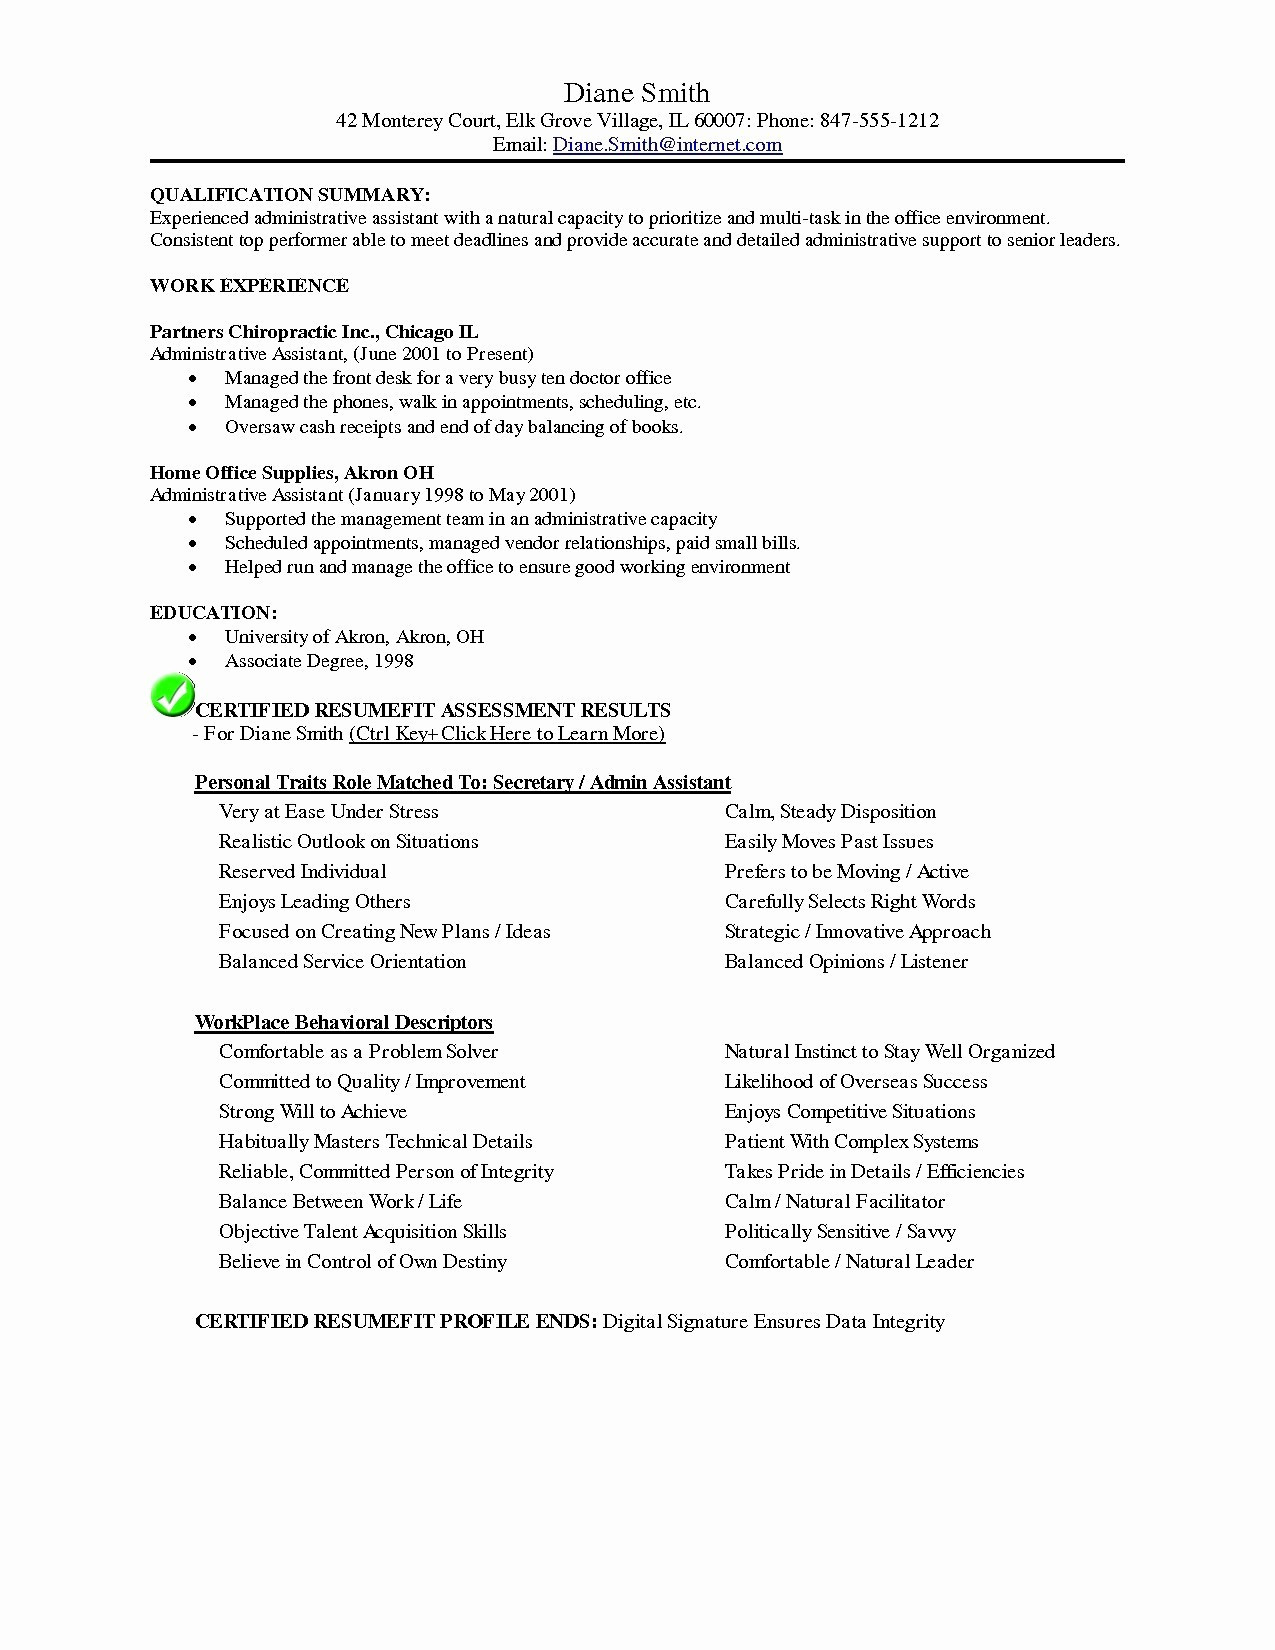 Office assistant Resume Template - New Resume Samples for Administrative assistant